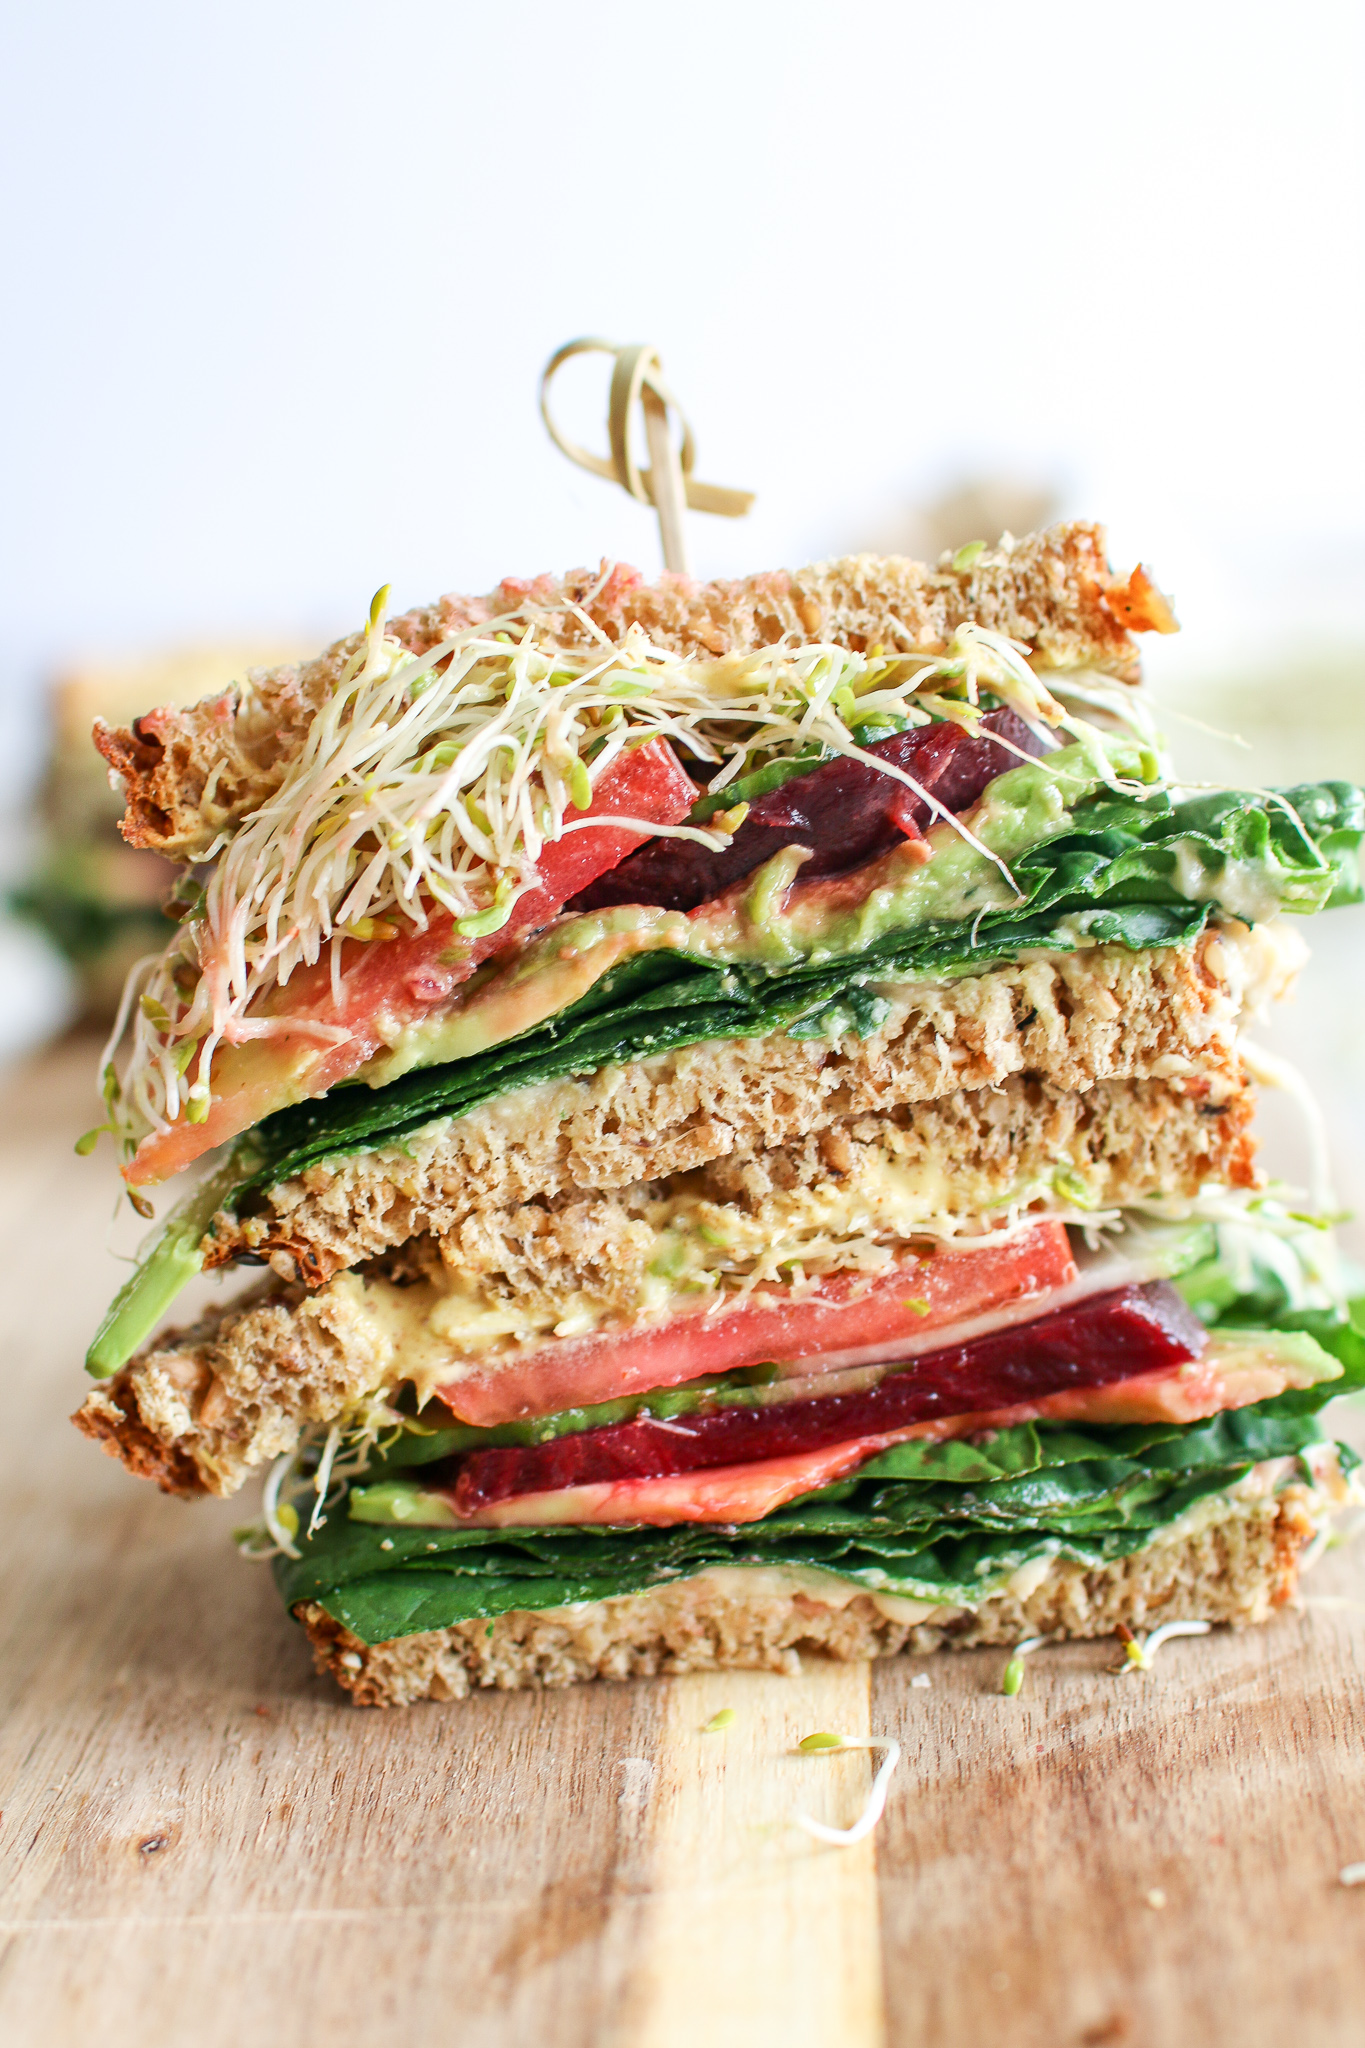 A colourful veggie sandwich stacked with fresh spinach, creamy avocado, crunchy cucumbers, tomatoes, beets and microgreens, smooshed between your favourite bread and smothered in caramelized onion hummus and creamy aioli. The ultimate sammy!